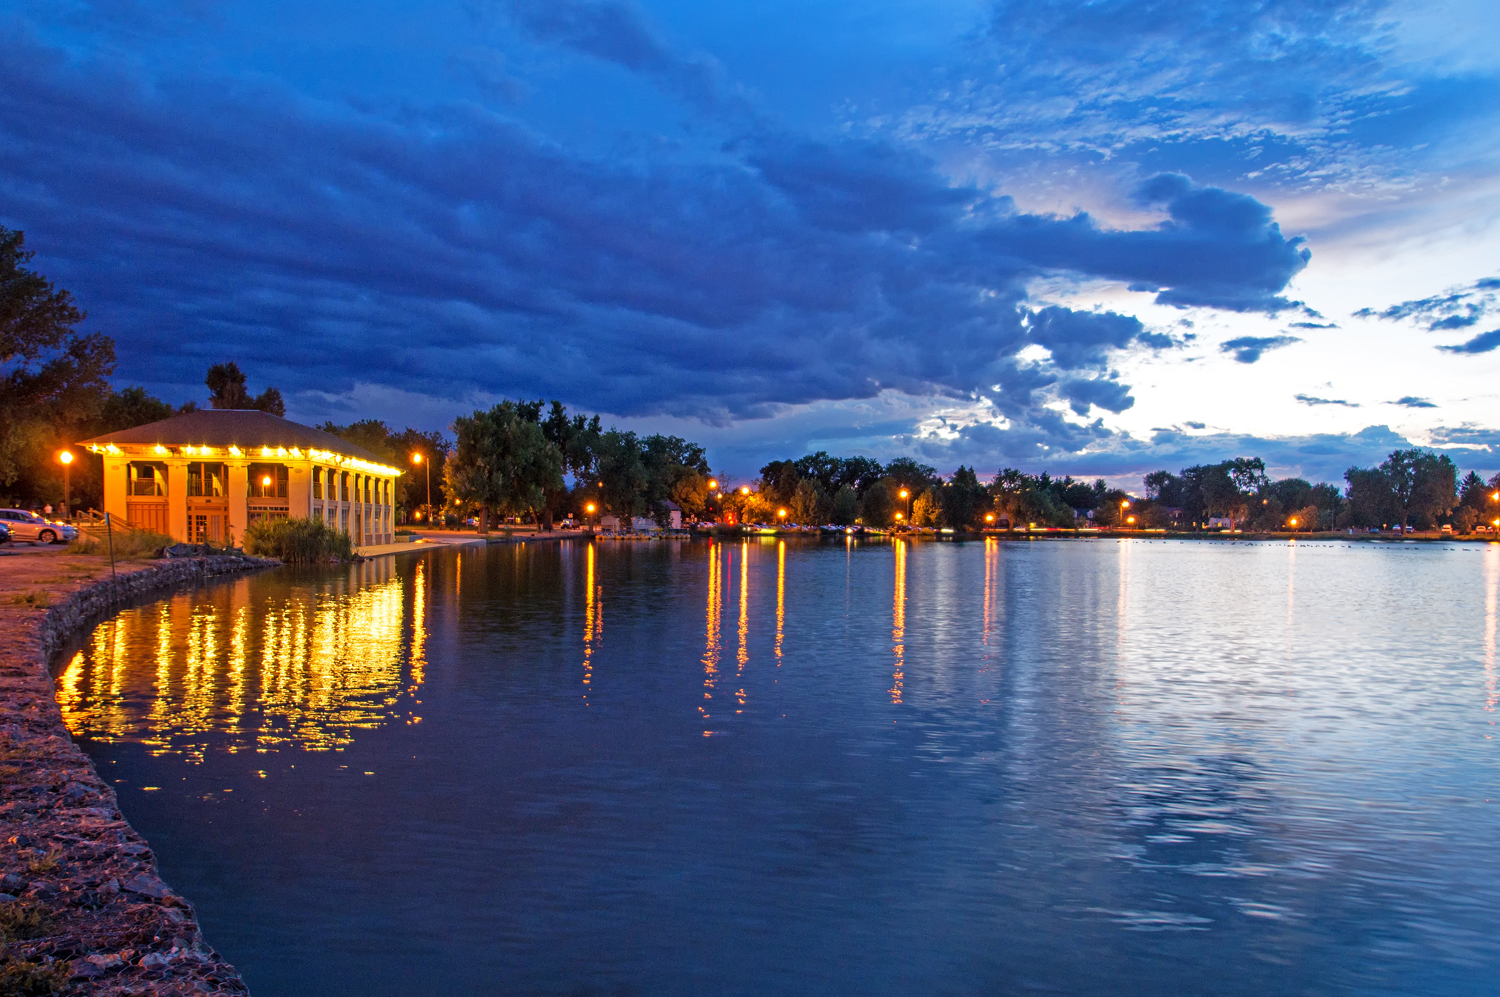 Washington Park Boathouse on Smith Lake (image from Denver Vibe)